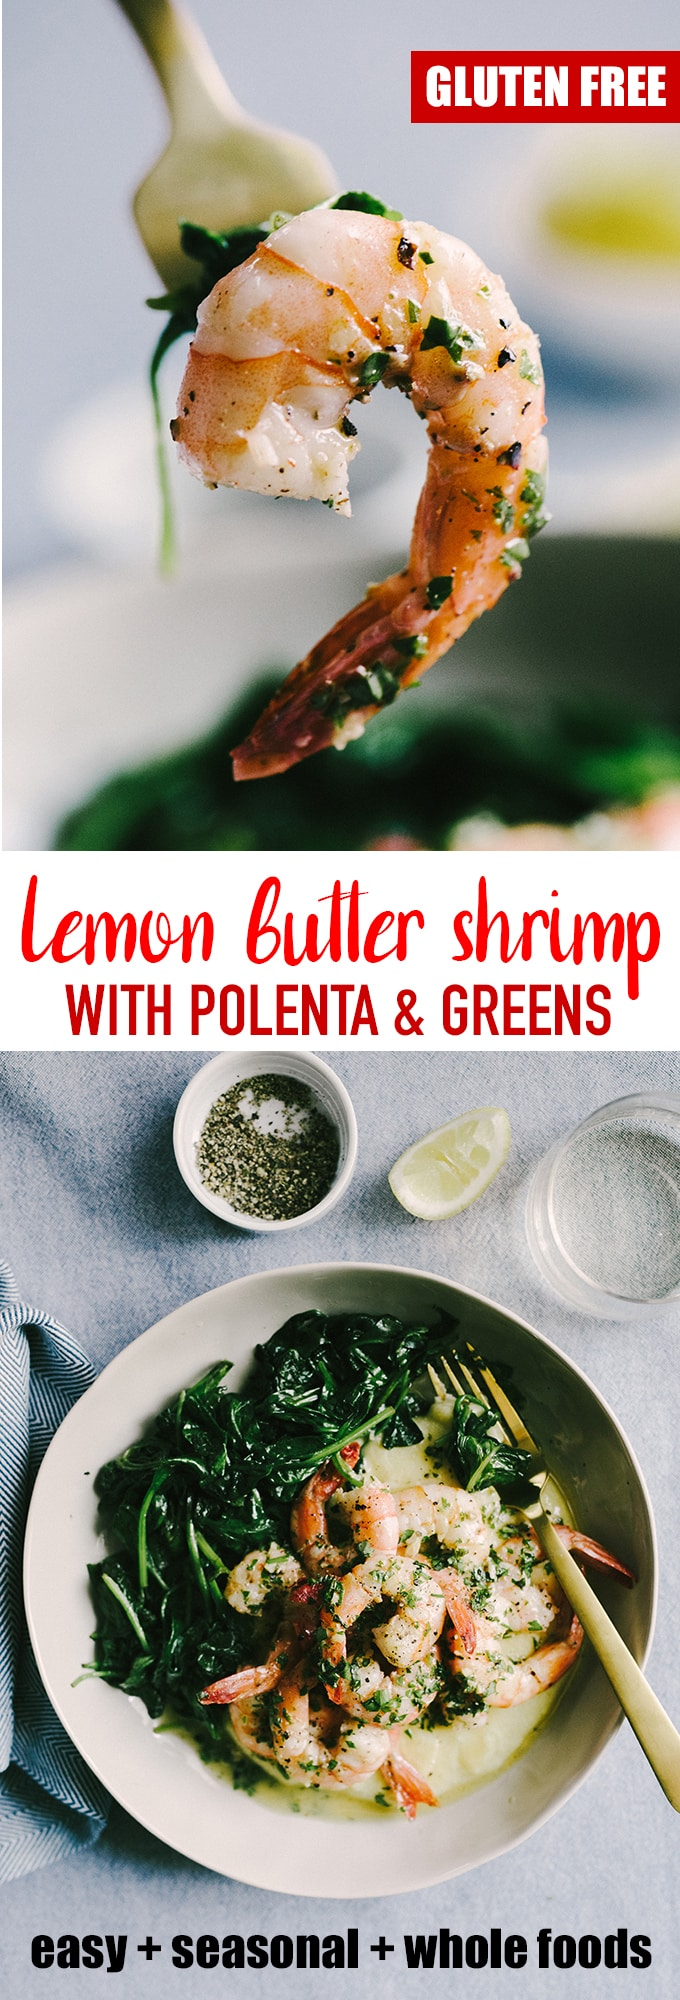 Lemon butter shrimp is one of my favorite whole foods recipes for making weeknights feel fancy. It's an easy and fast real food recipe for busy people everywhere. #healthy #wholefood #realfood #shrimp #lemonbutter